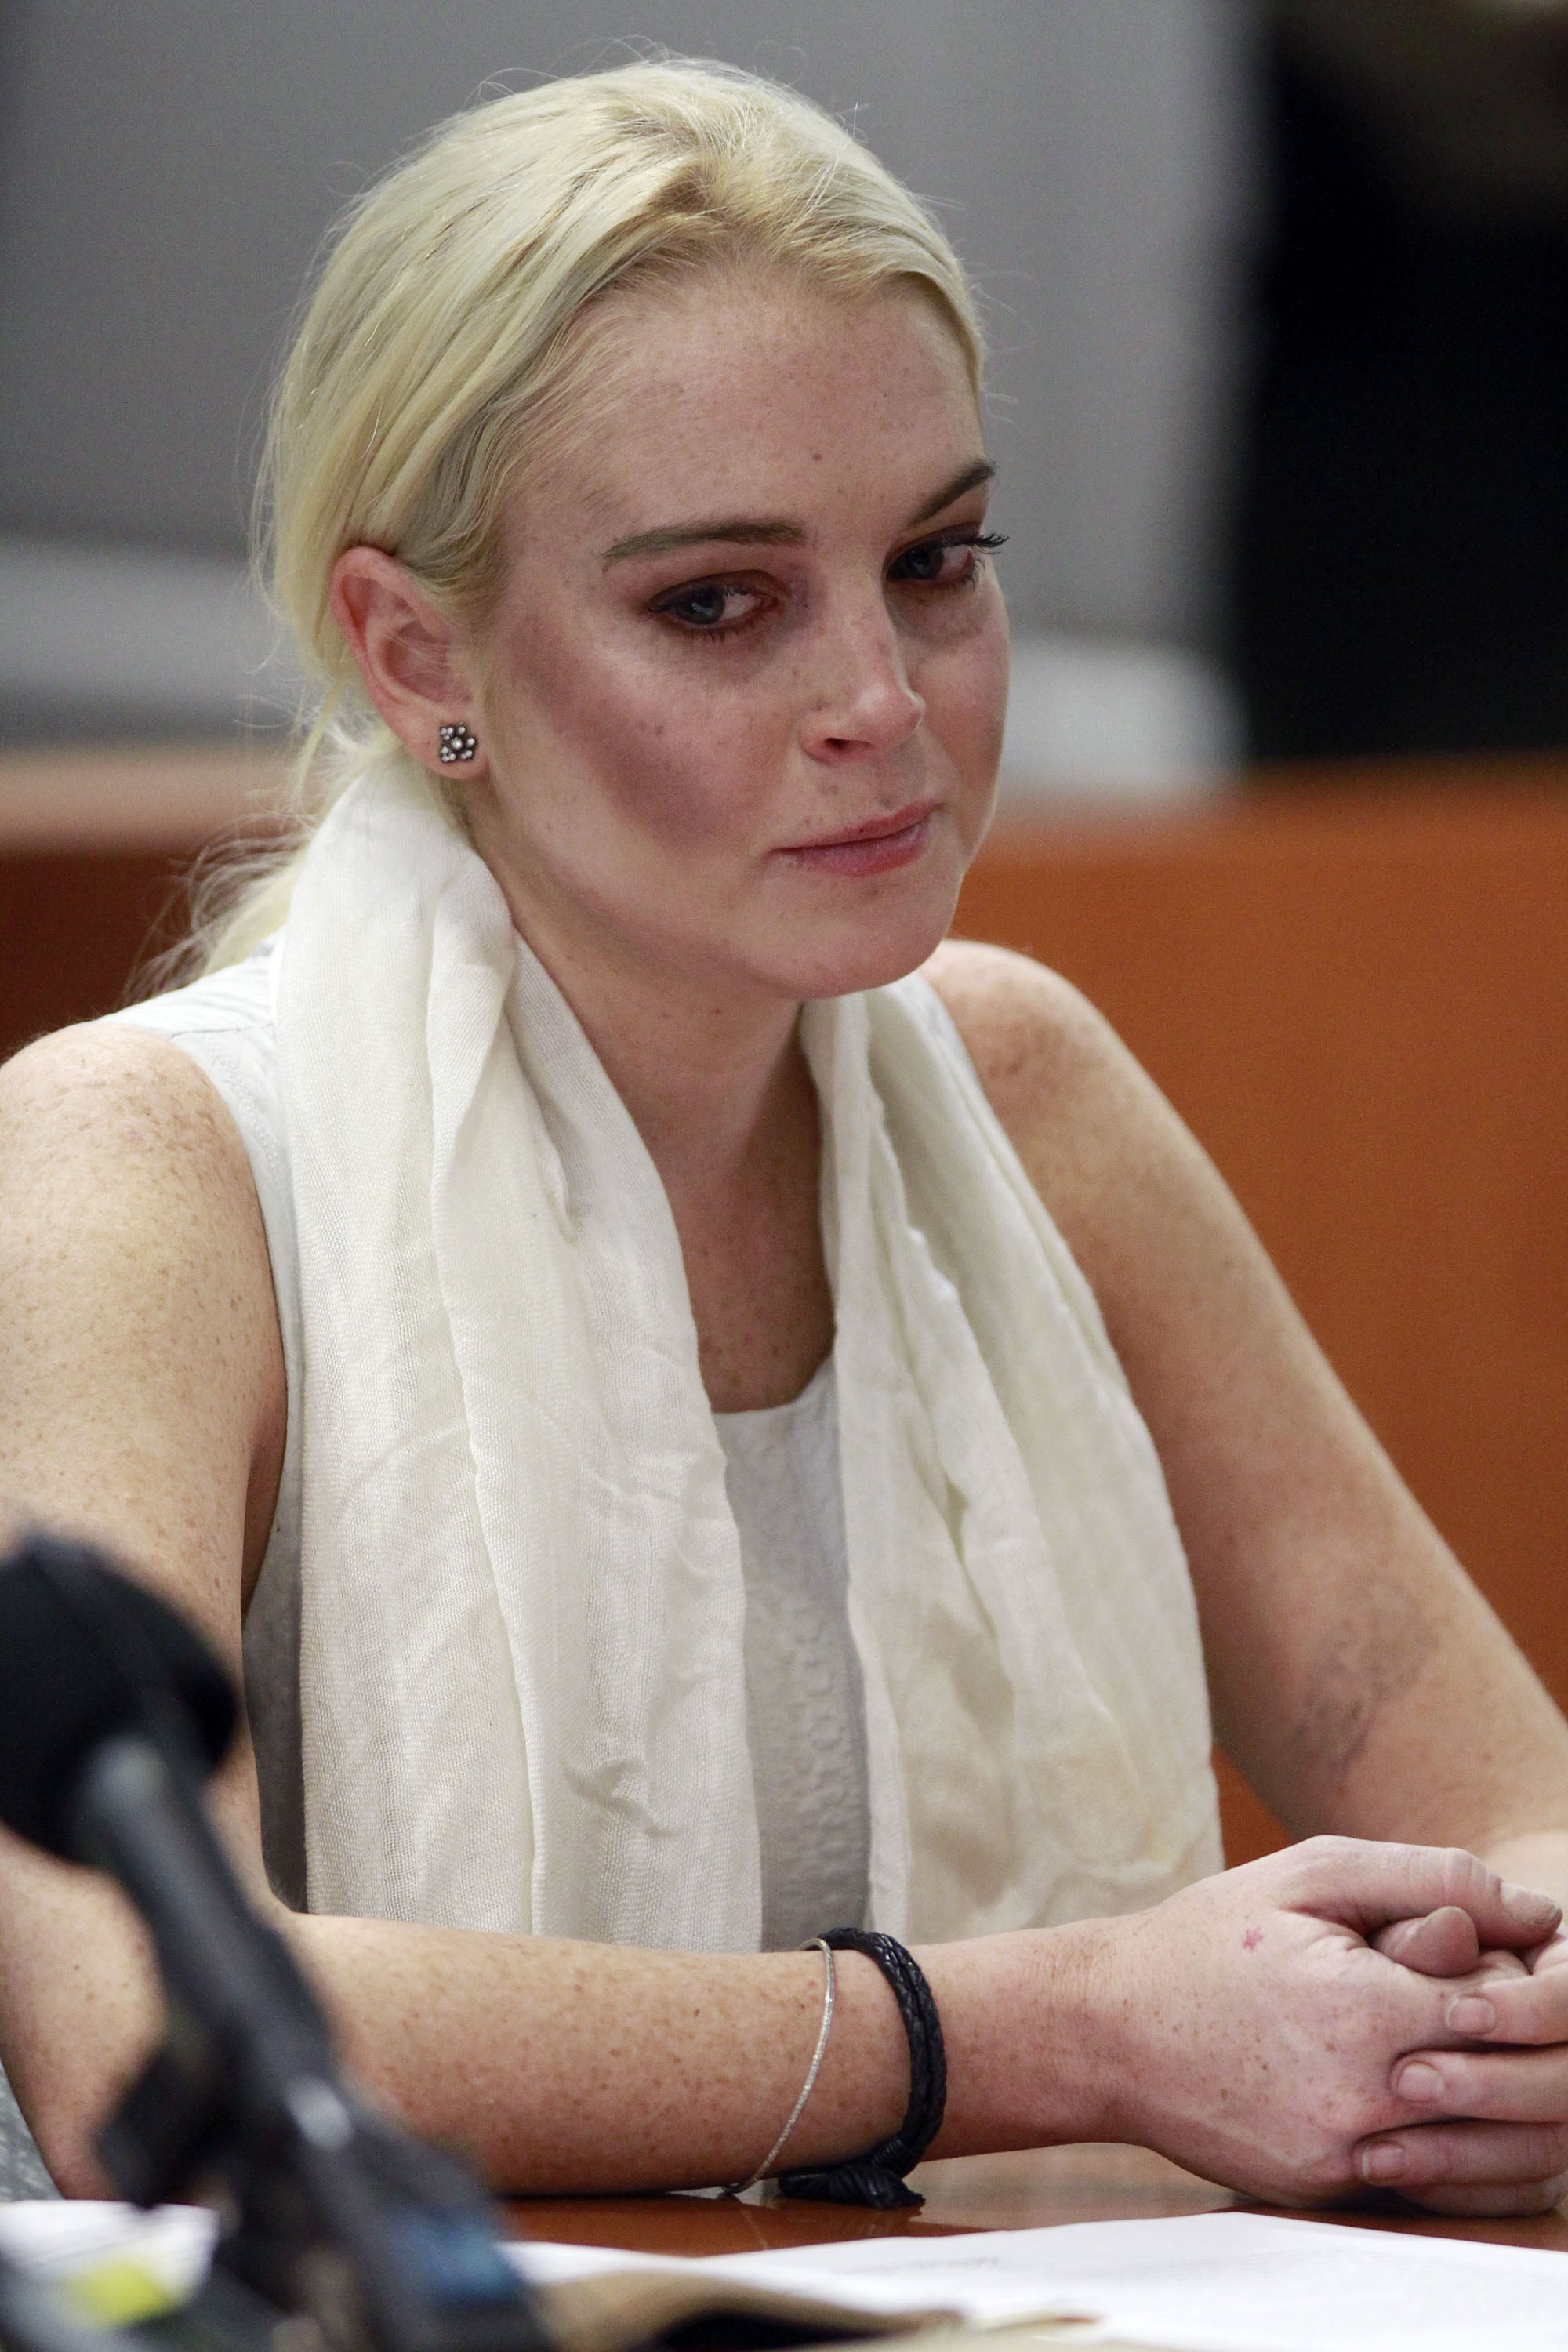 Busted Lindsay Lohan - The Hollywood Gossip